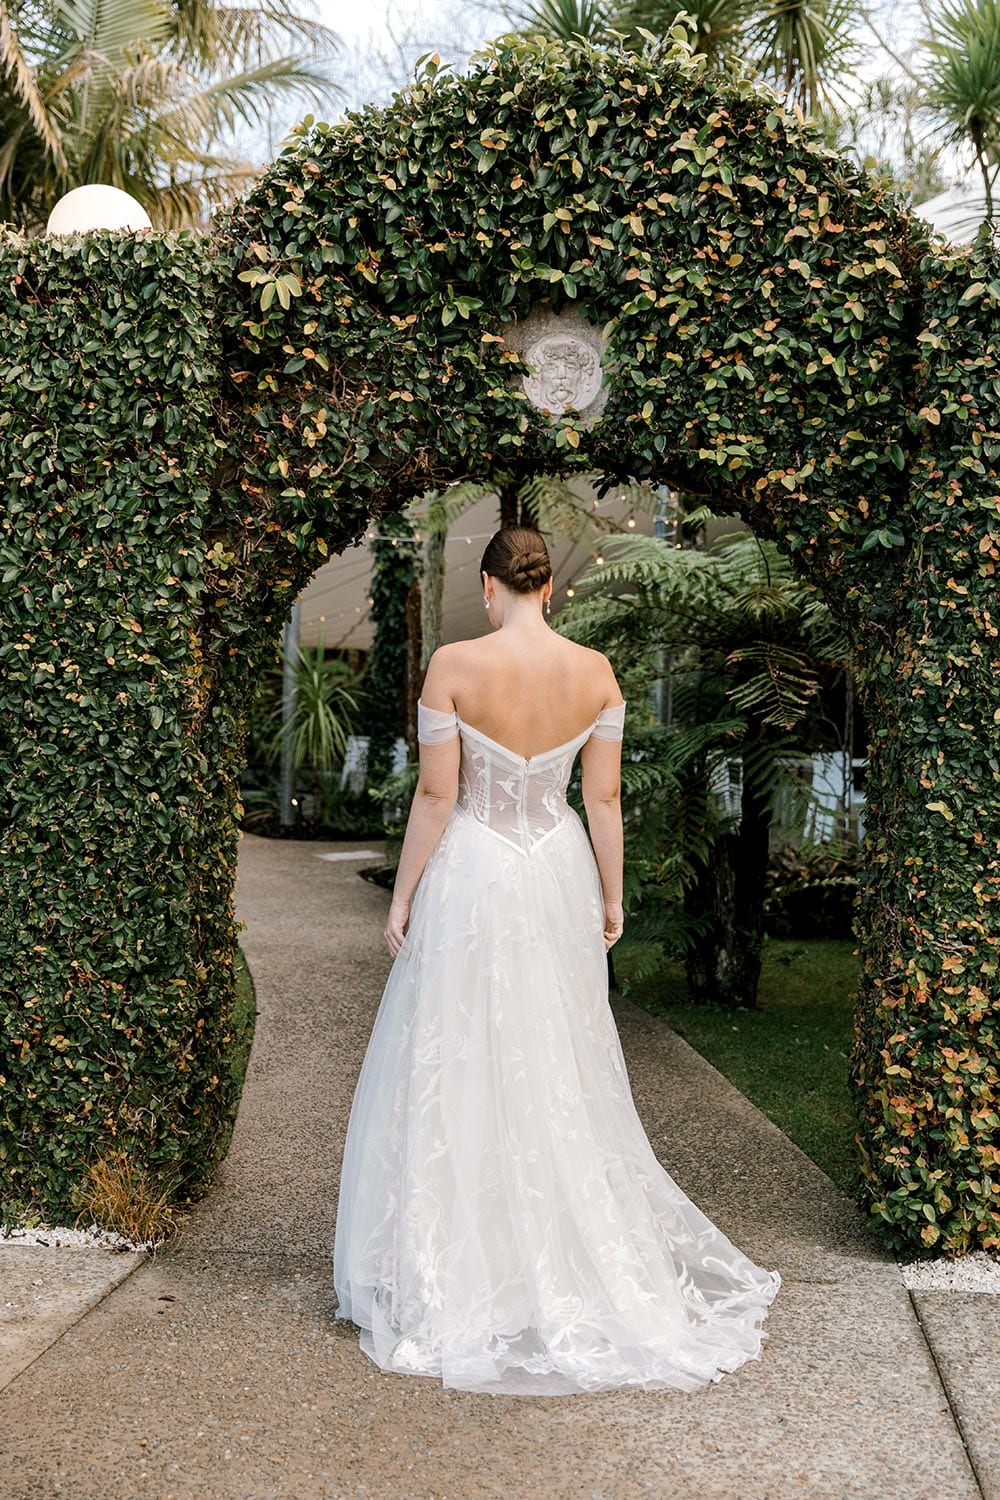 Zoe wedding dress by Vinka Design - a romantic & dreamy off-shoulder gown with a structured, boned bodice, a full lace & tulle skirt. Semi-sheer bodice with tulle off-shoulder detailing and satin belt. Worn in green garden archway, model facing away to show back.